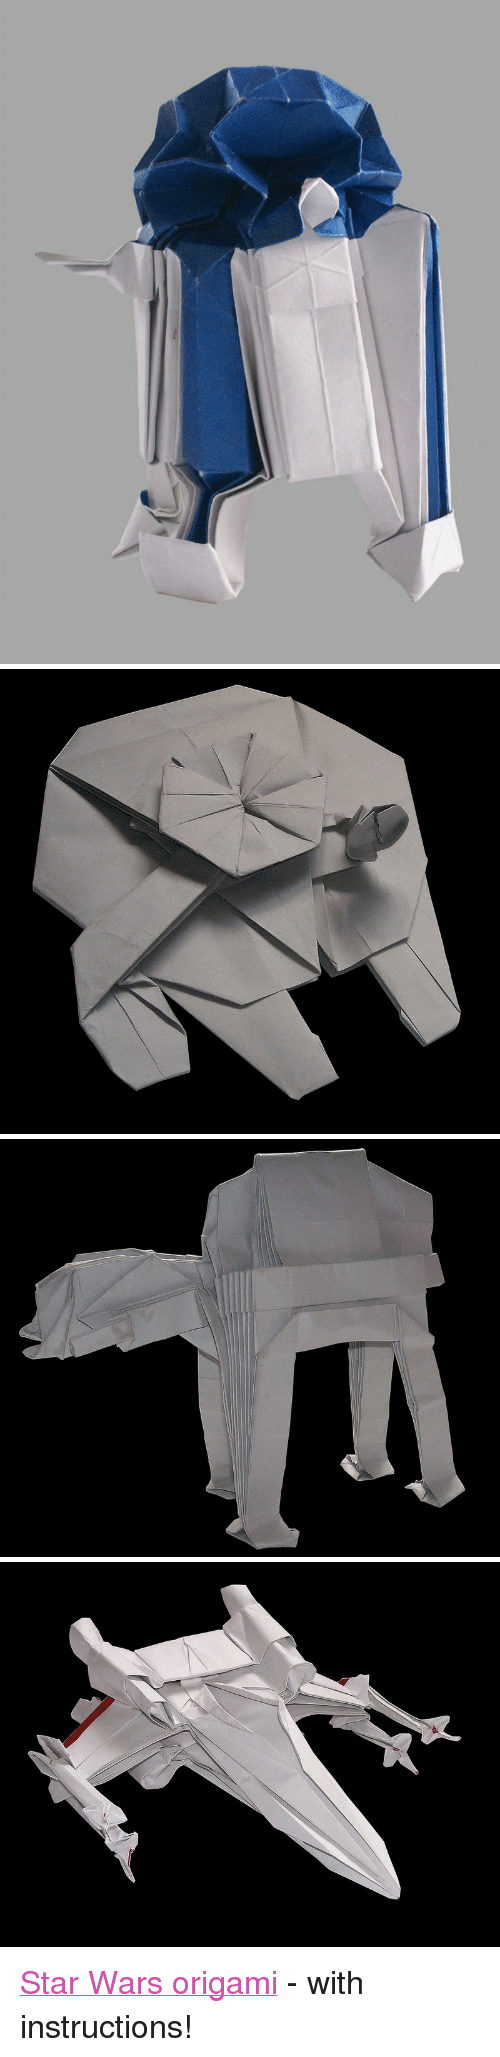 "Star Wars: <p><a href=""http://www.wired.com/design/2012/11/starwarigami/?viewall=true"">Star Wars origami</a> - with instructions!</p>"